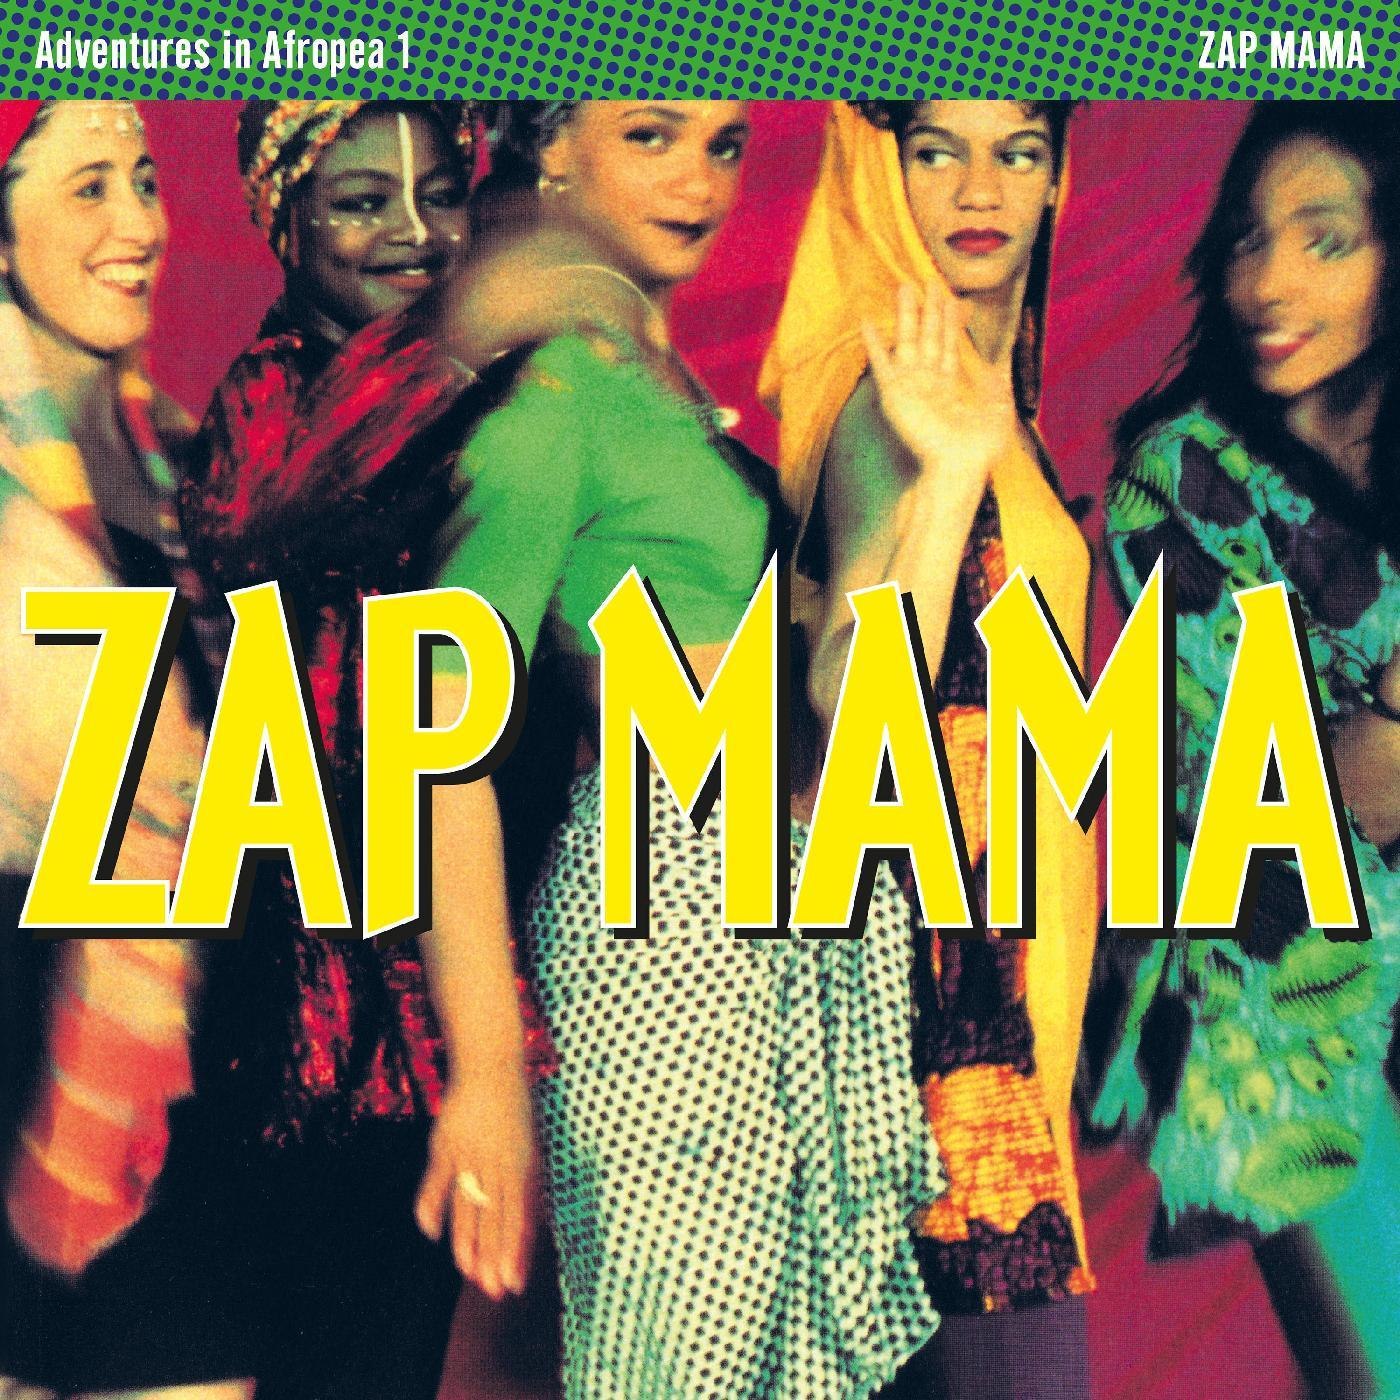 Zap Mama - Adventures In Afropea [RSD Drops Sep 2020]